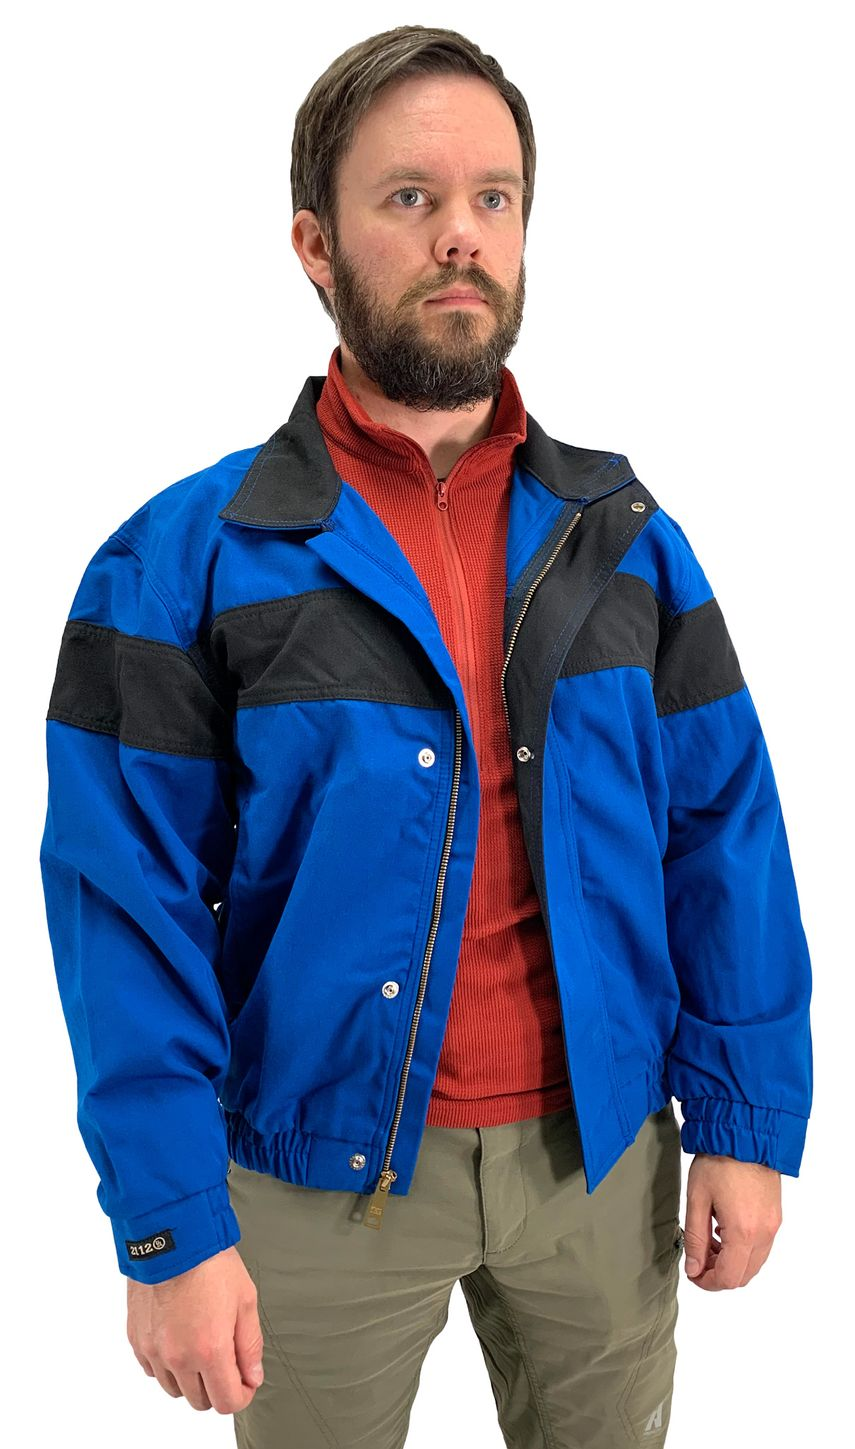 Workrite Fire Resistant Safety Jacket 300NX60/3006 - 6 oz Nomex® IIIA Royal Blue Example